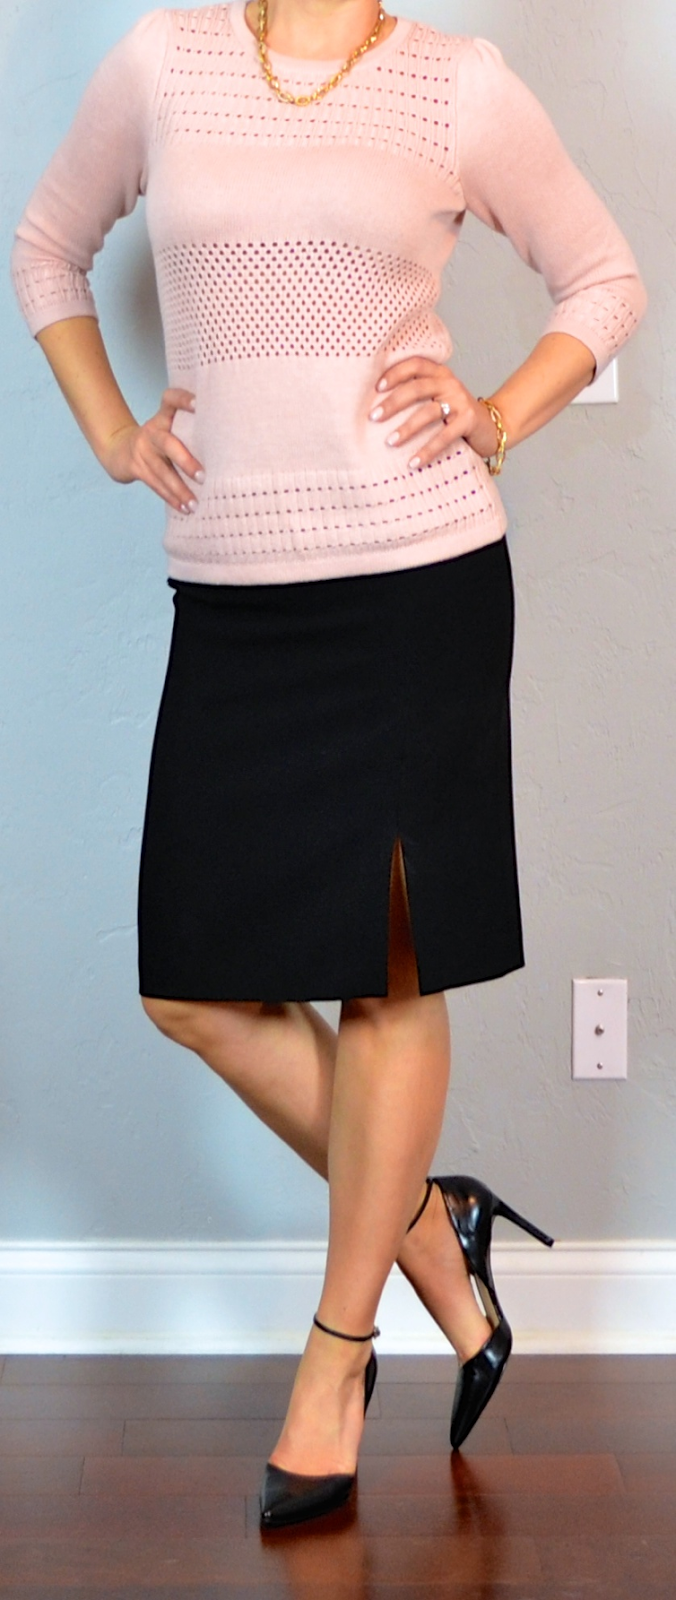 419a2-pinksweater